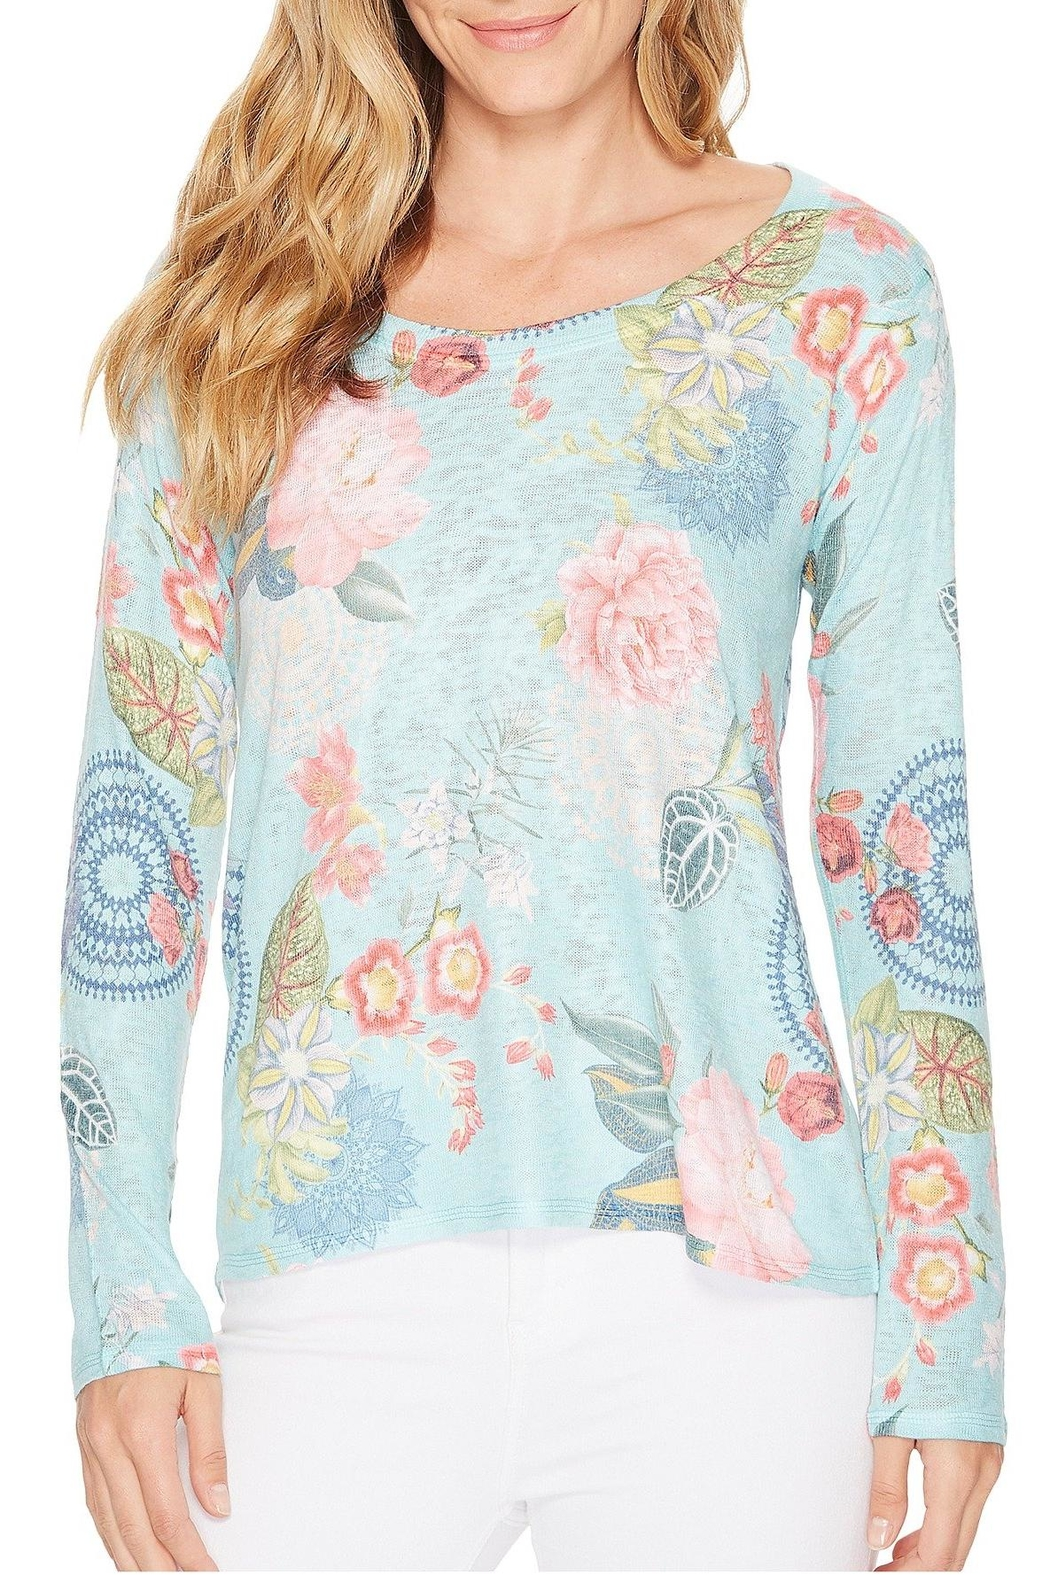 Nally & Millie Floral Print Top - Front Full Image